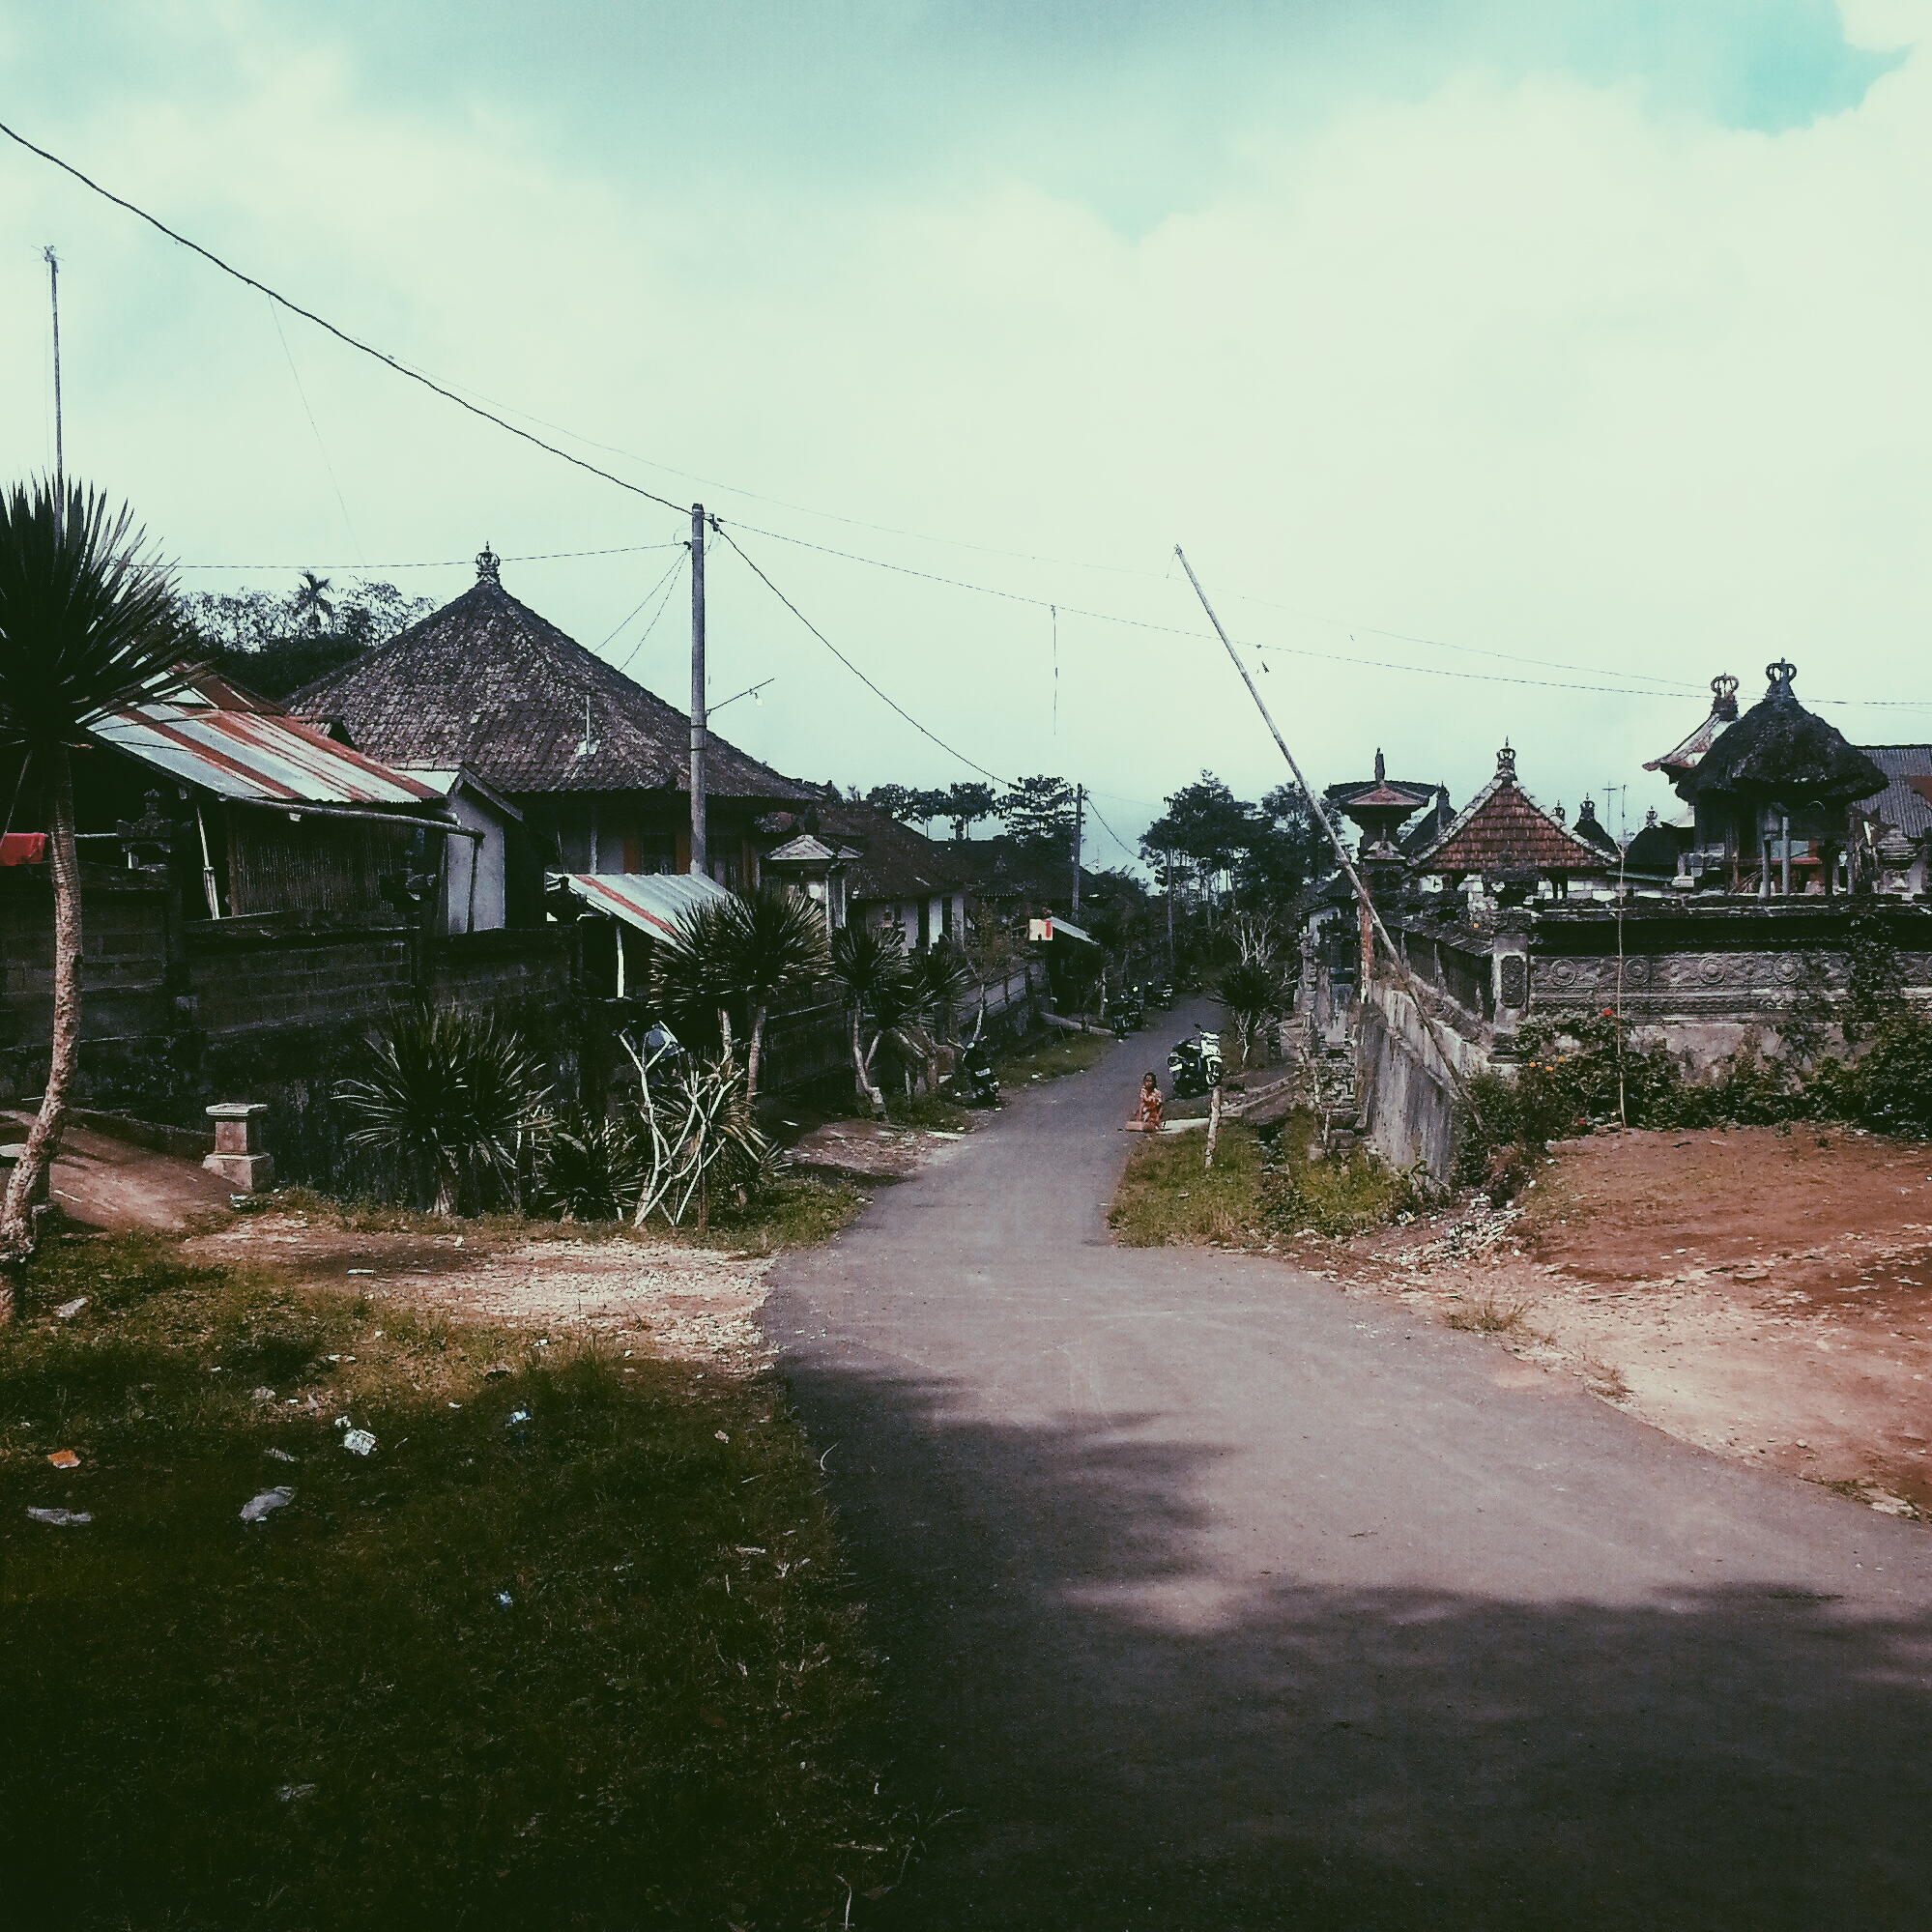 A street in the nearby village